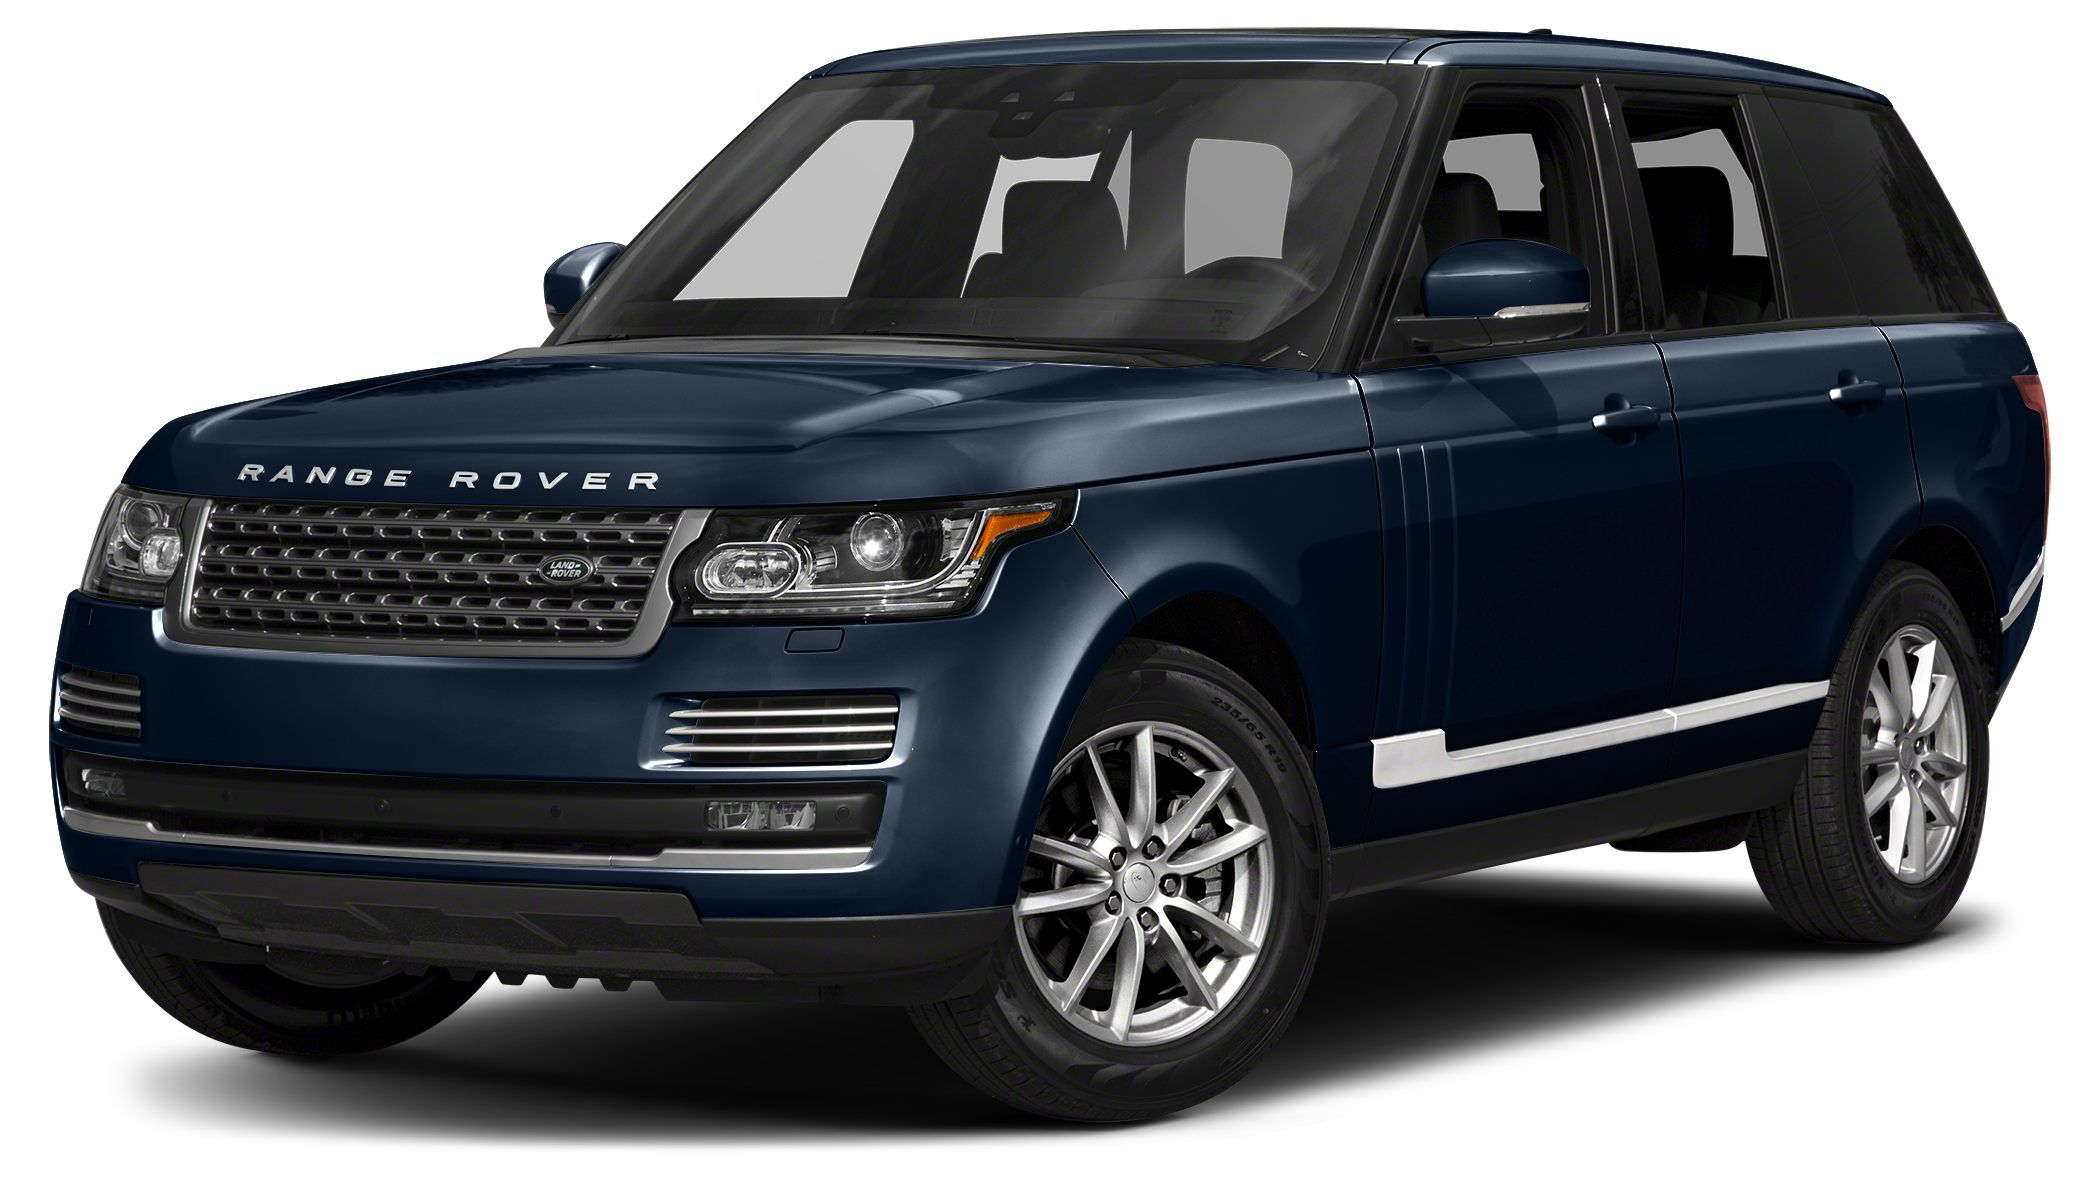 New 2017 Land Rover Range Rover 3 0L Supercharged HSE for sale at